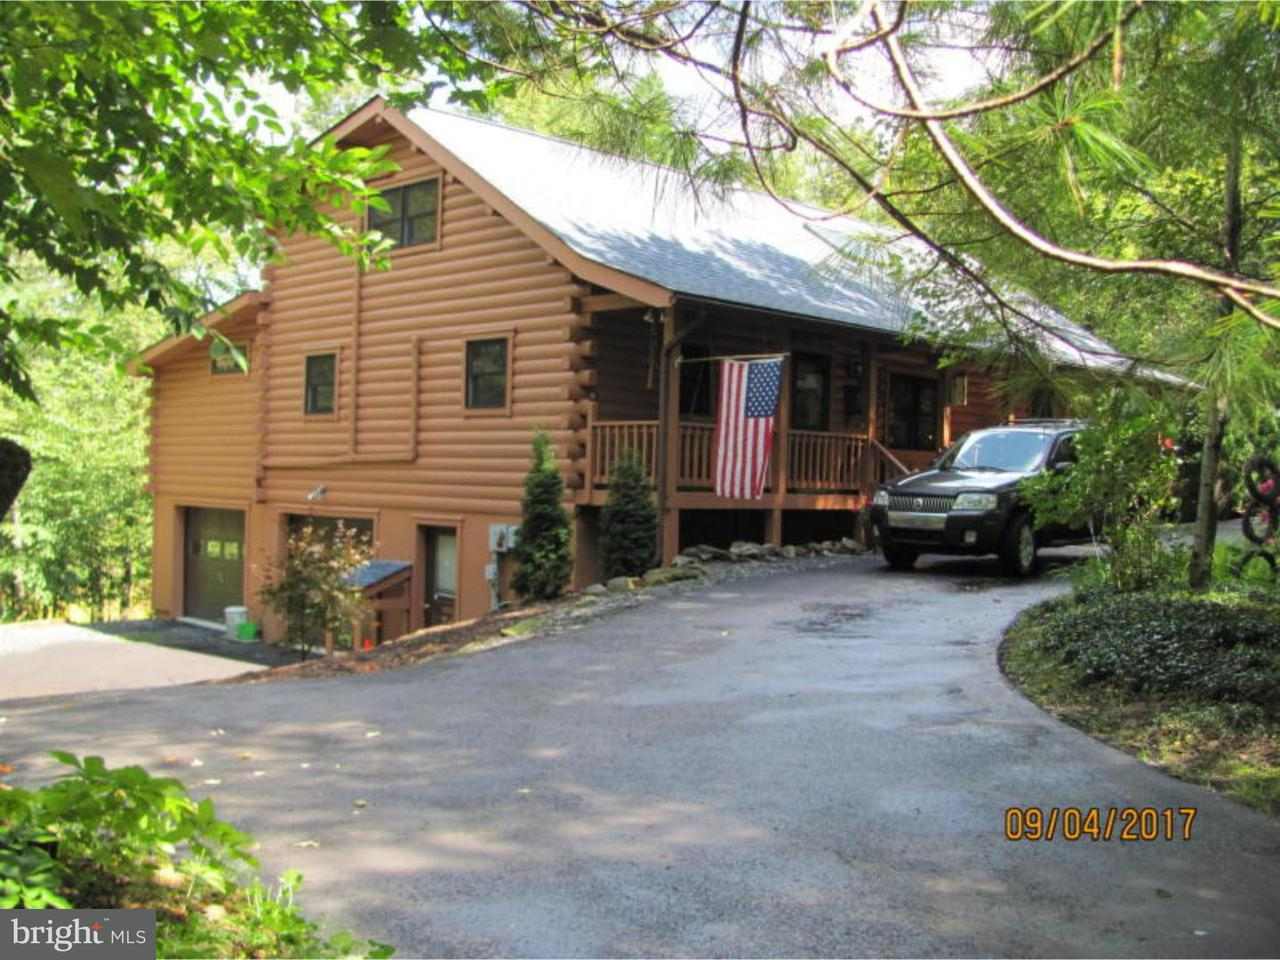 Single Family Home for Sale at 60 GALLAHER Drive Lehighton, Pennsylvania 18235 United States